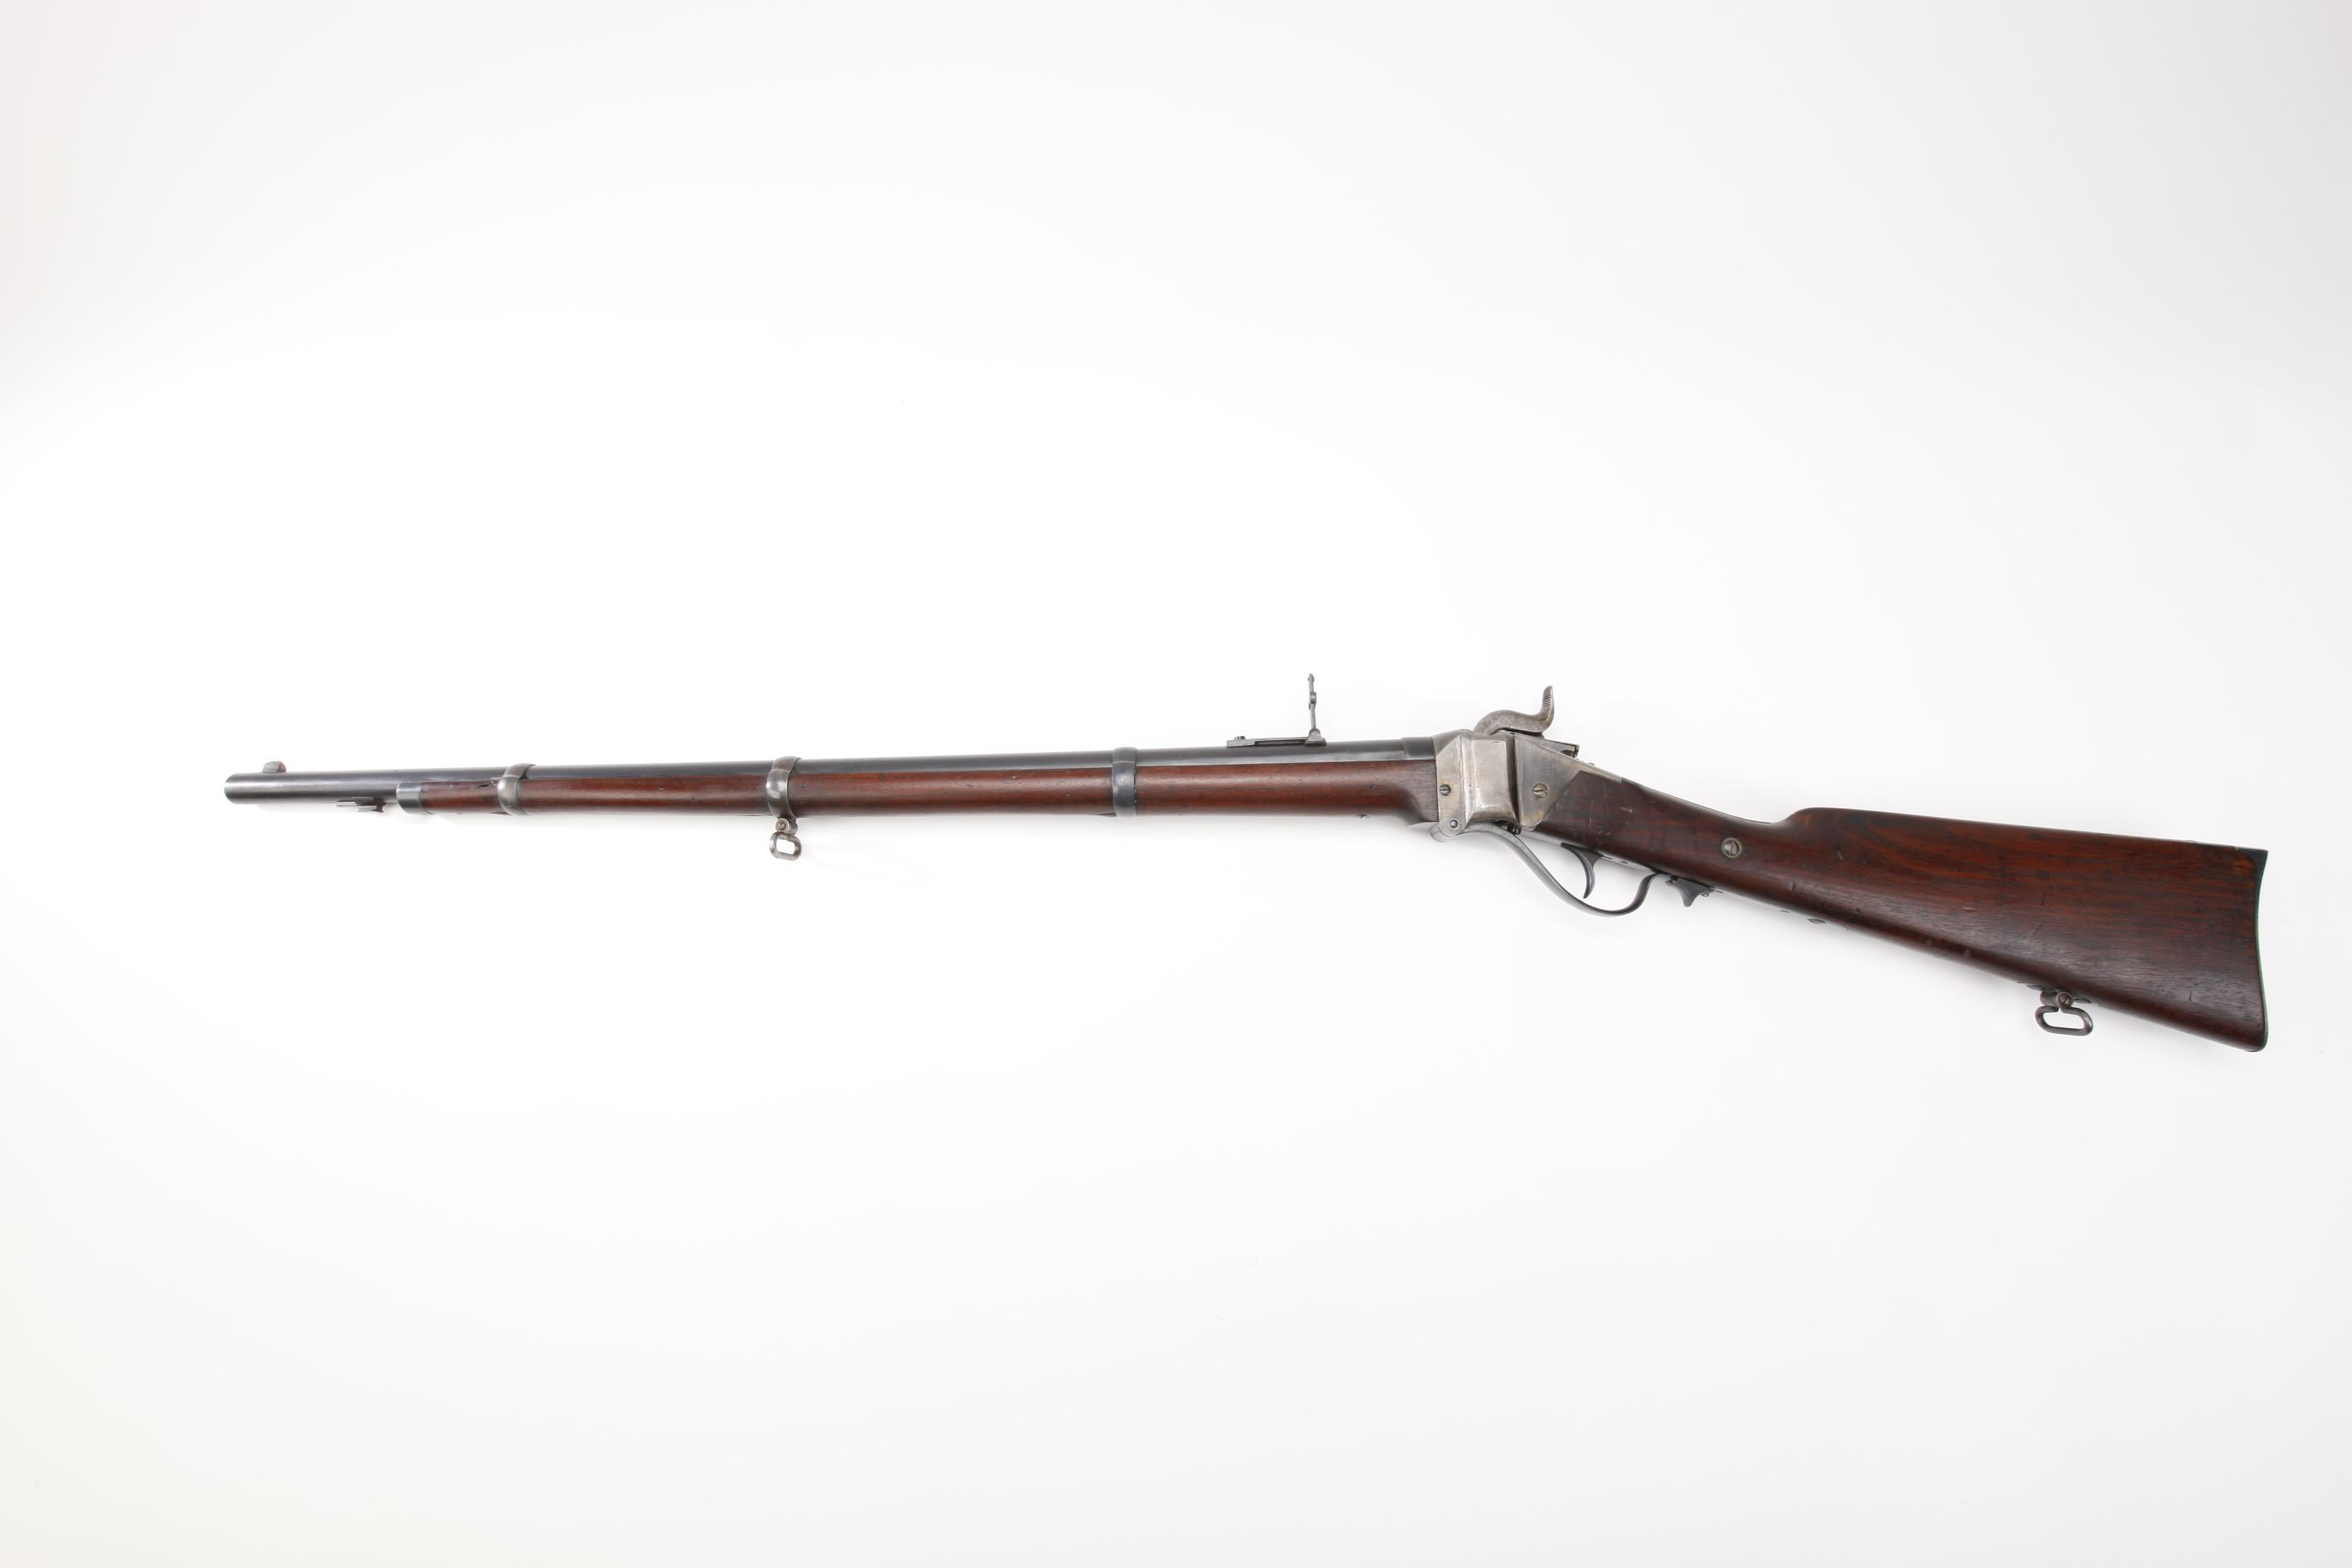 Sharps Model 1859 Percussion Breechloading Rifle